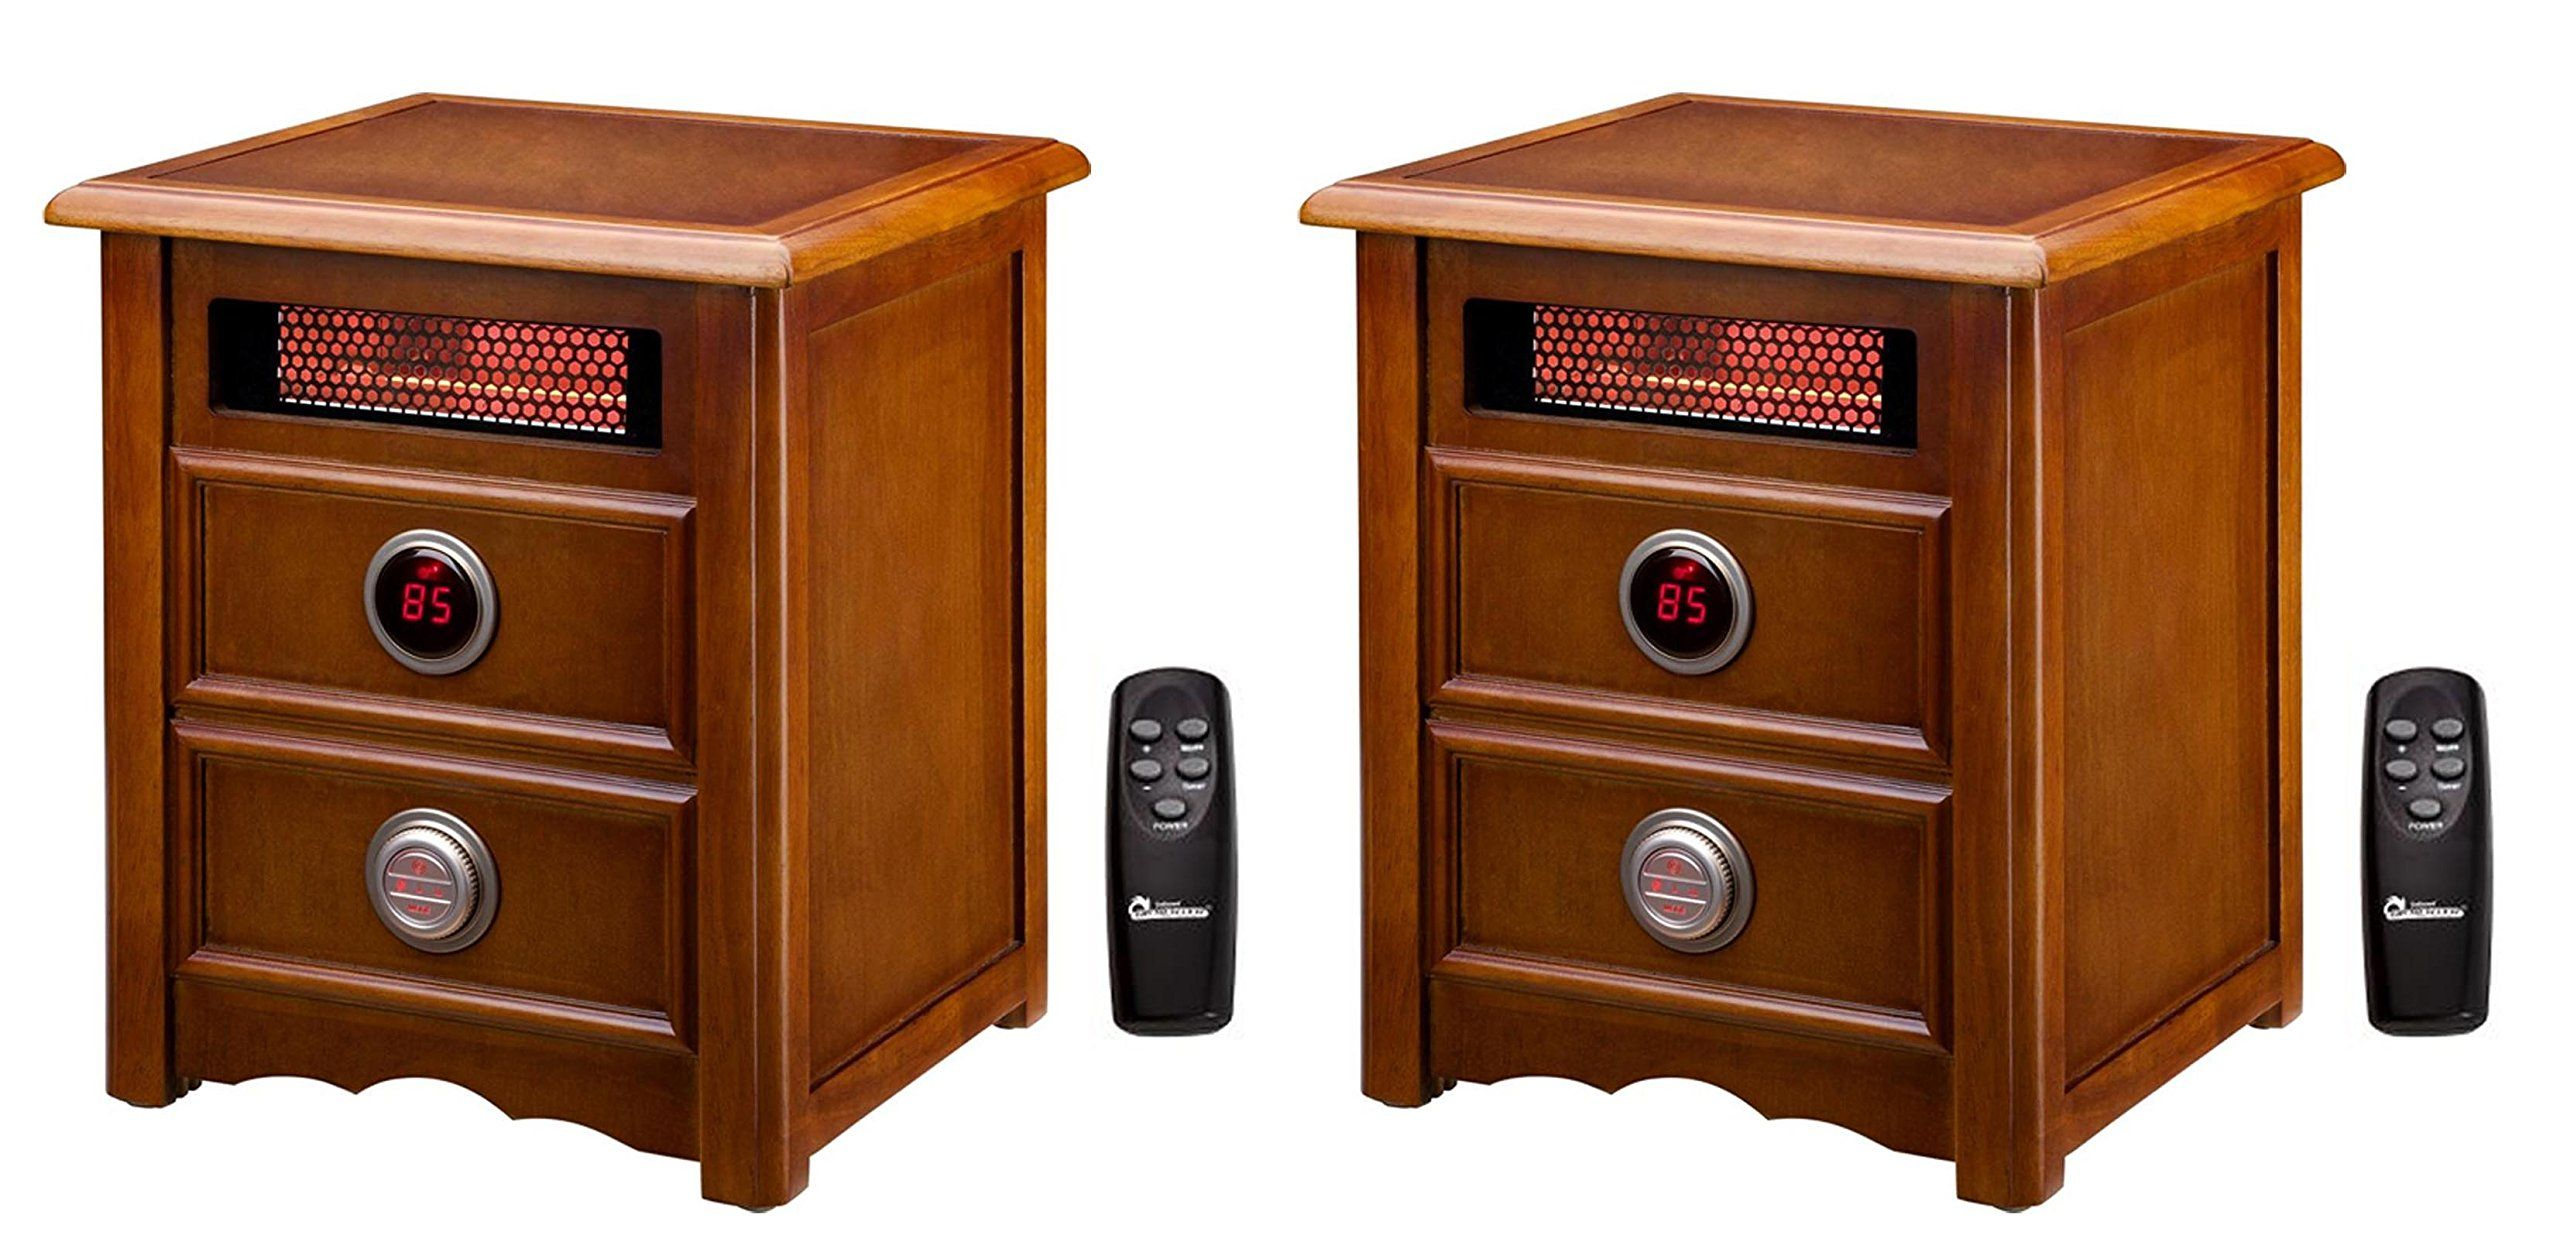 Dr infrared w electric cherry nightstand space heater with